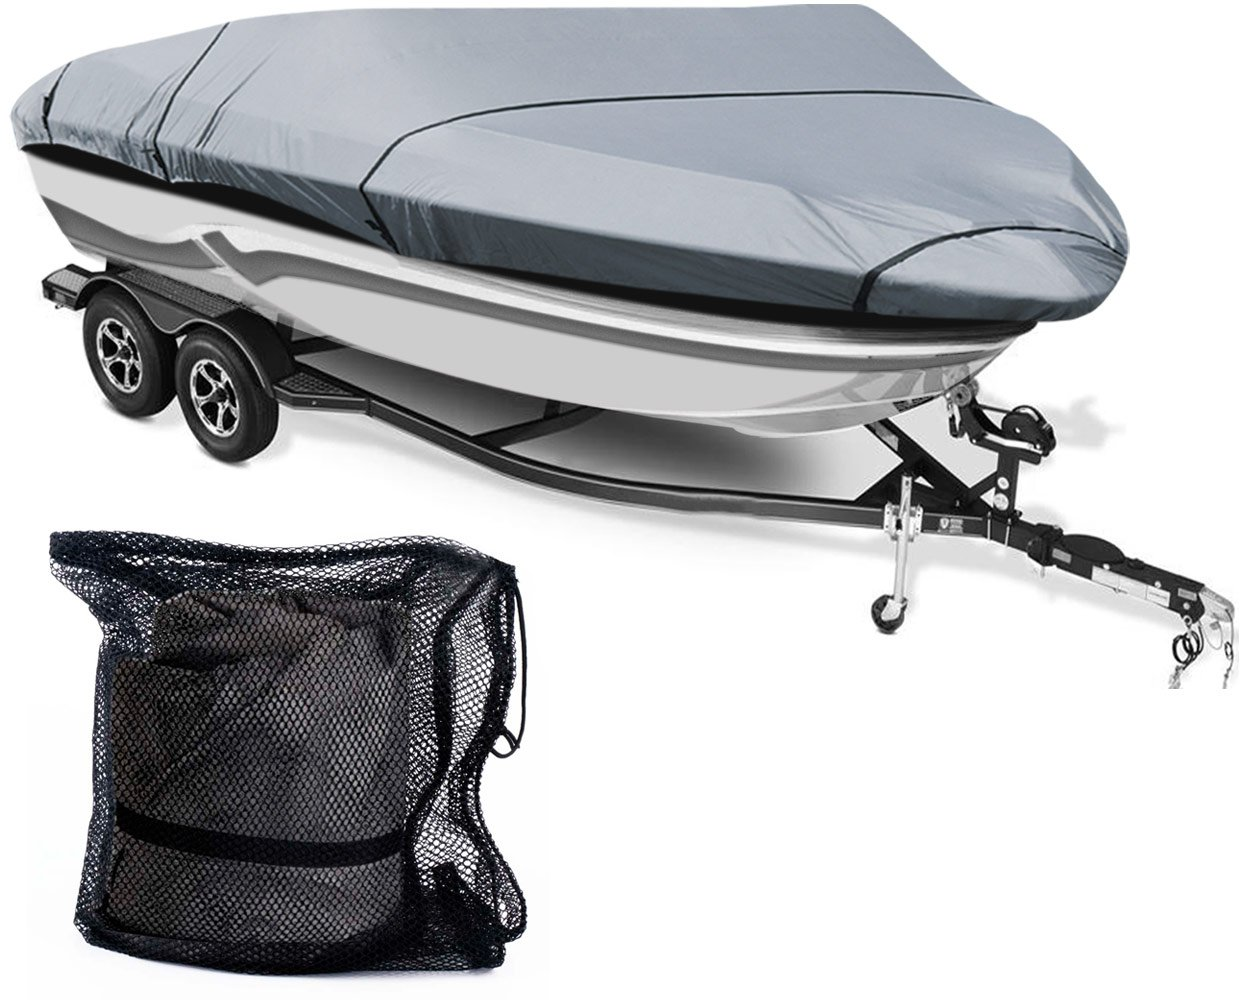 Image result for Essential Things to Consider When Choosing the Best Boat Covers